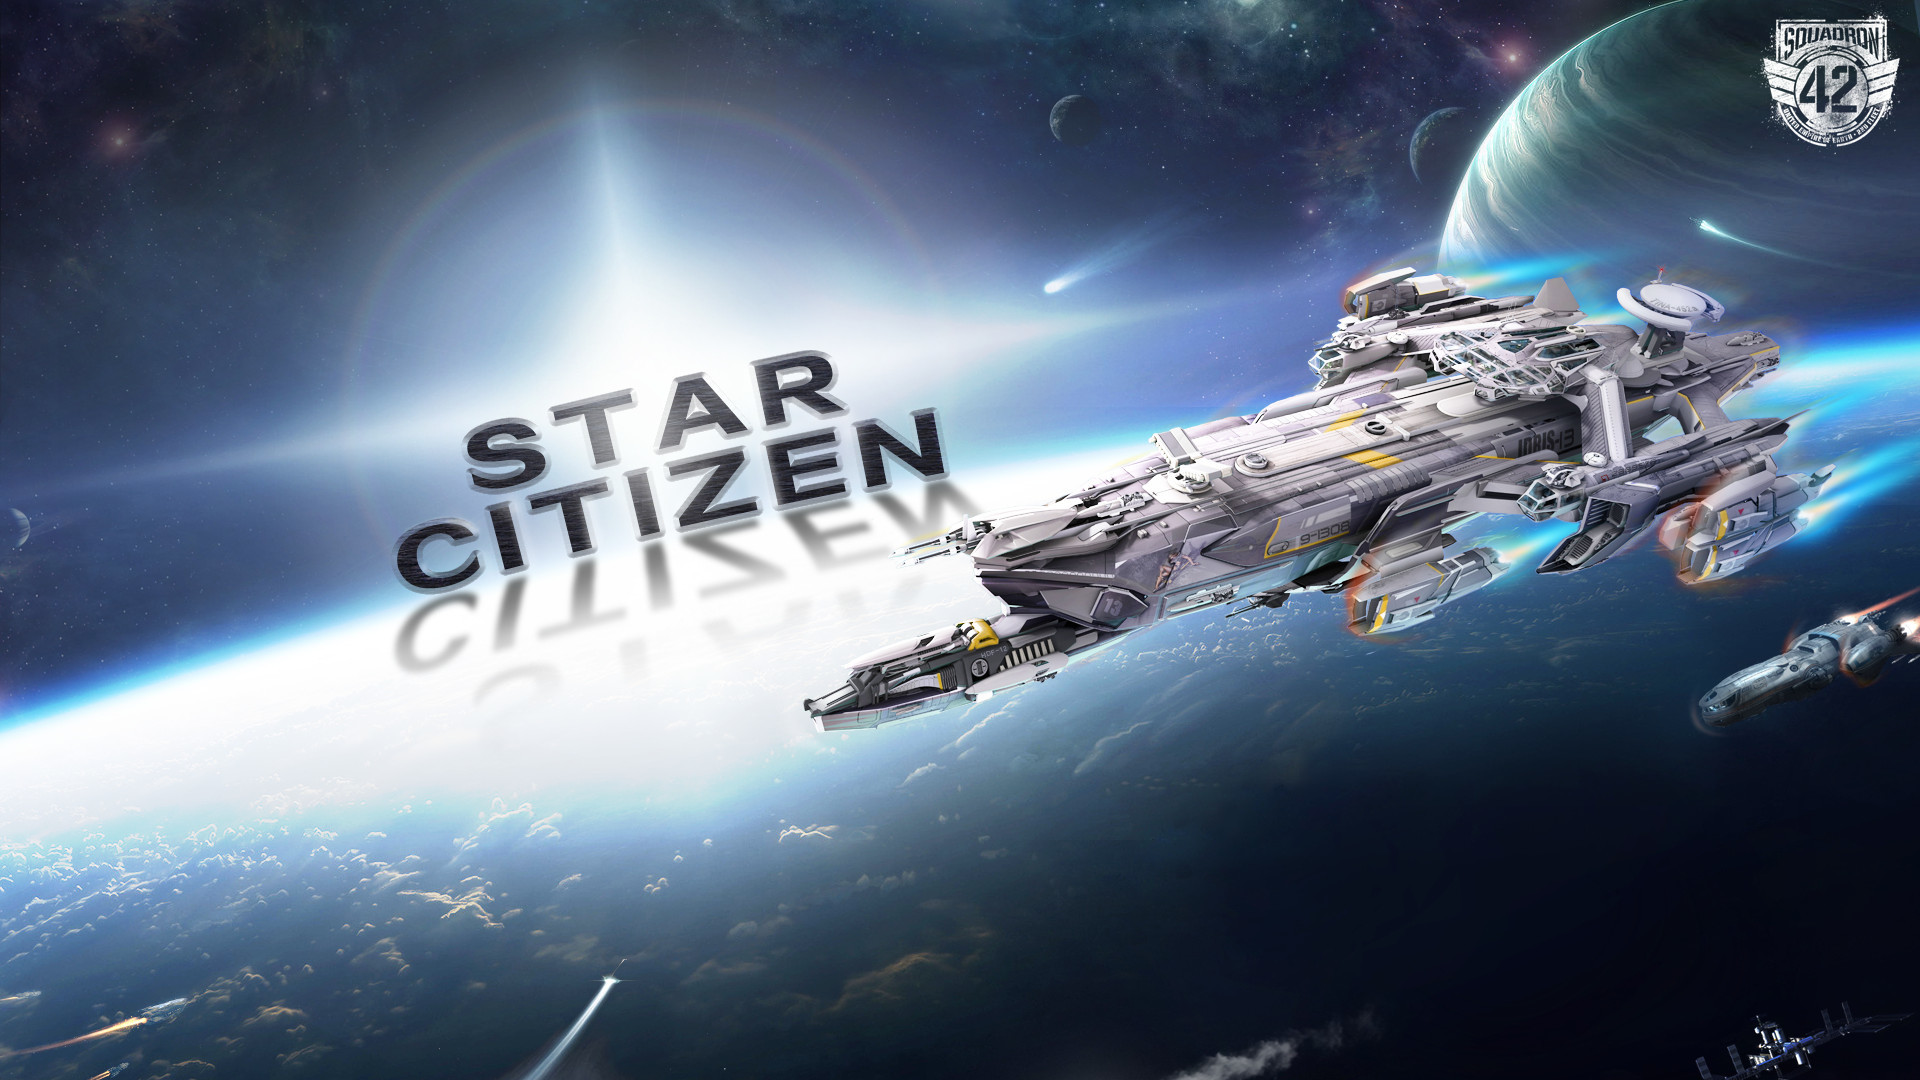 Трейлер шутера на базе Star Citizen